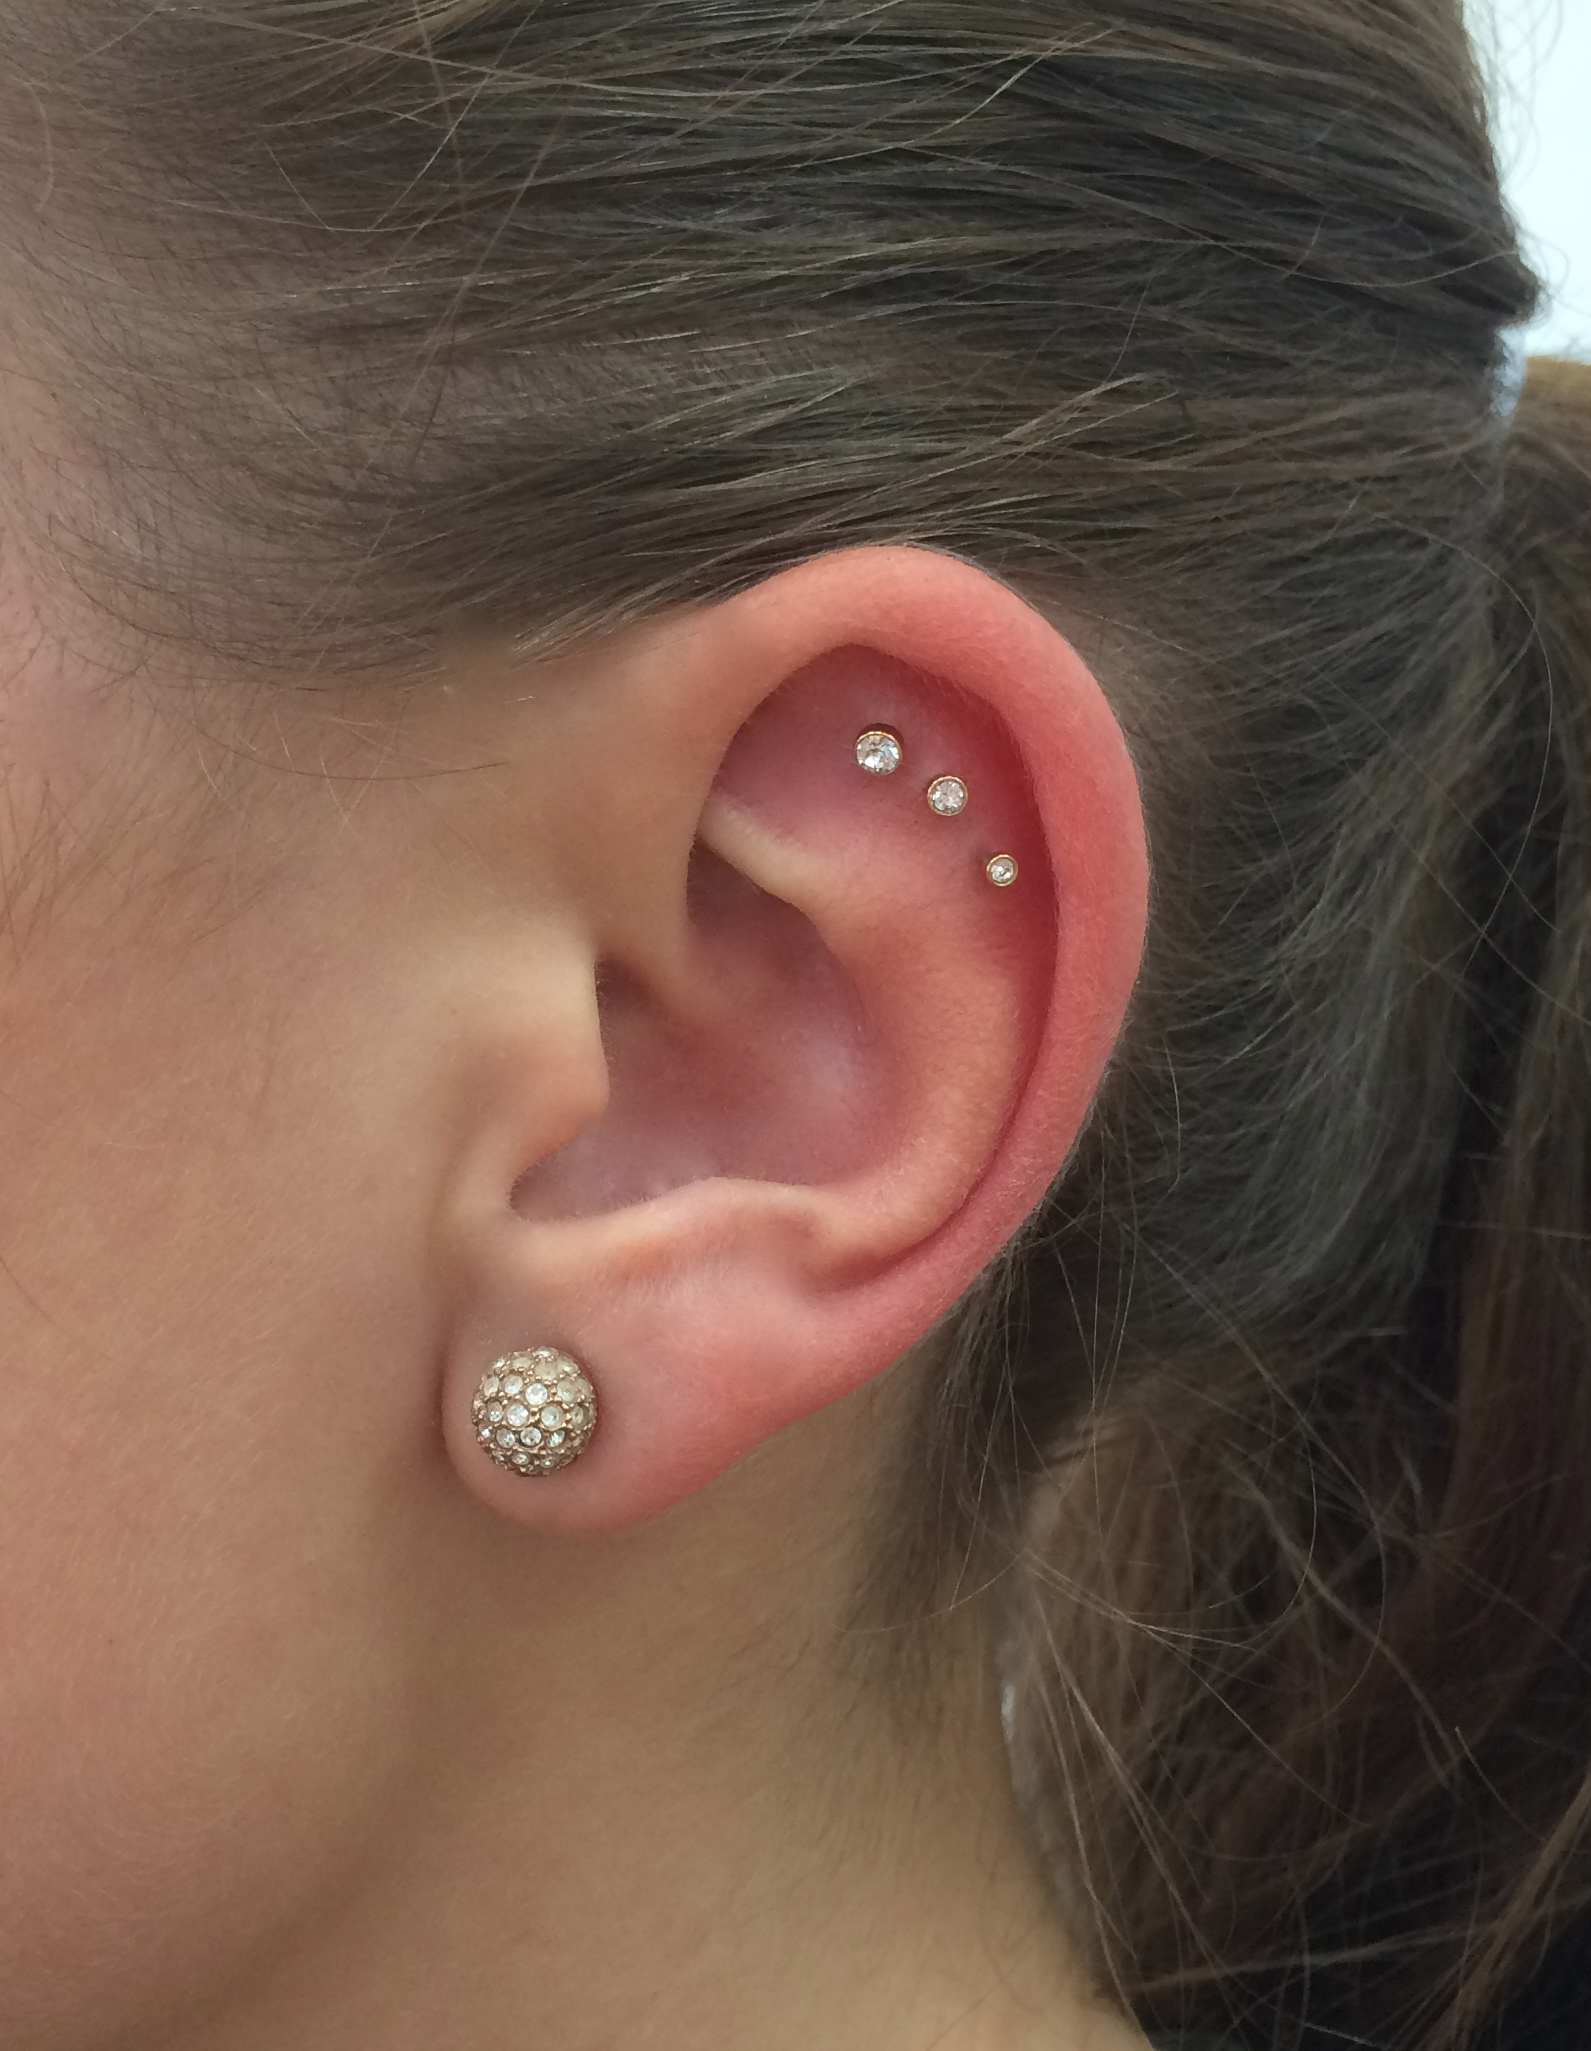 ohr piercing conch